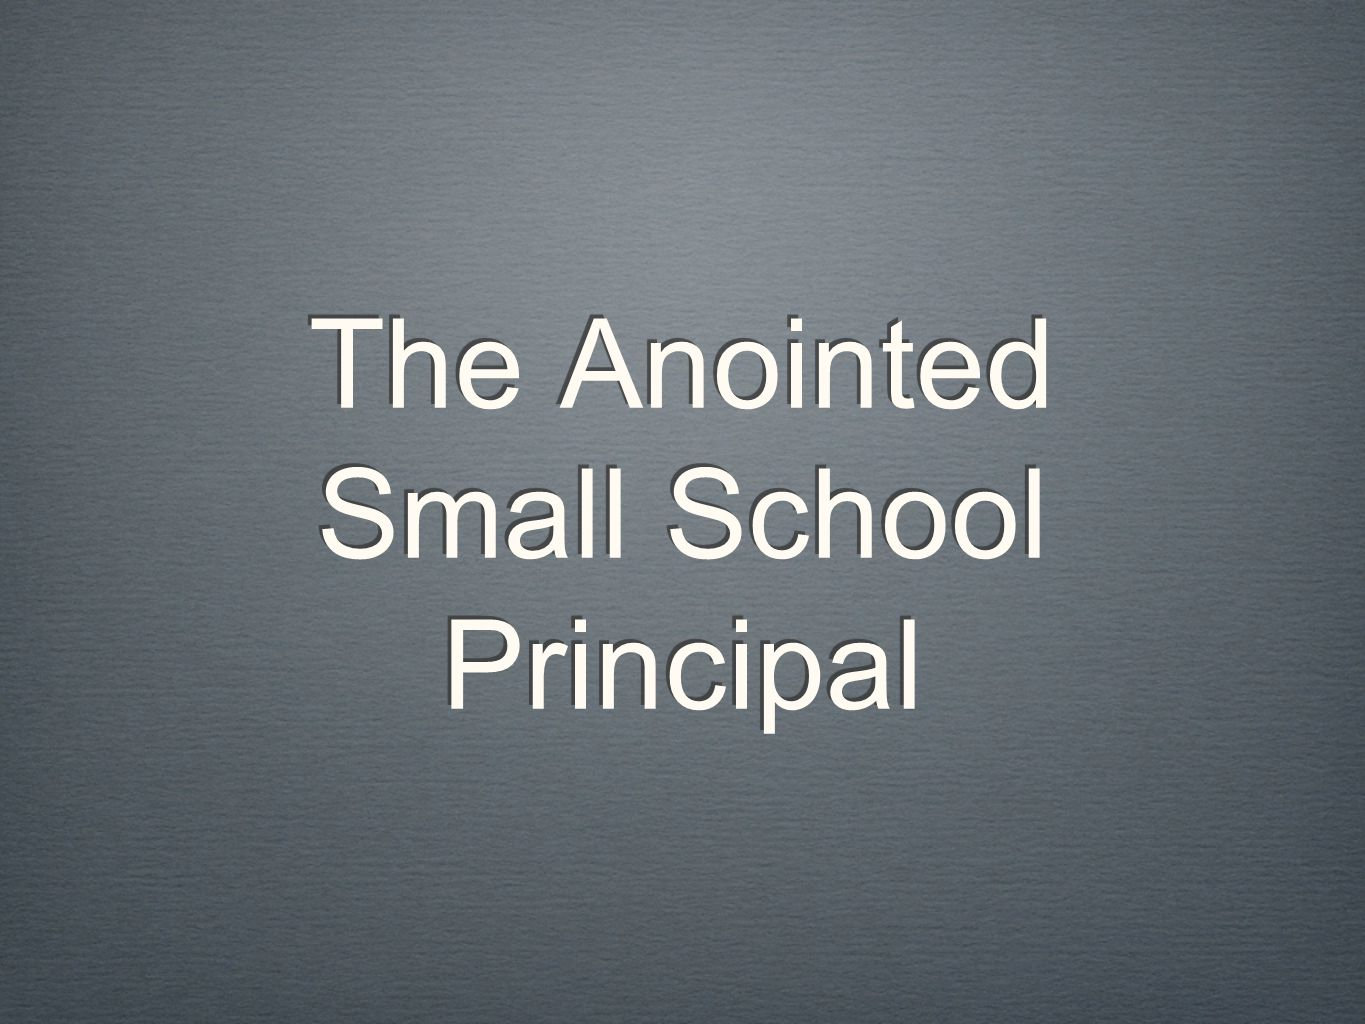 The Anointed Small School Principal